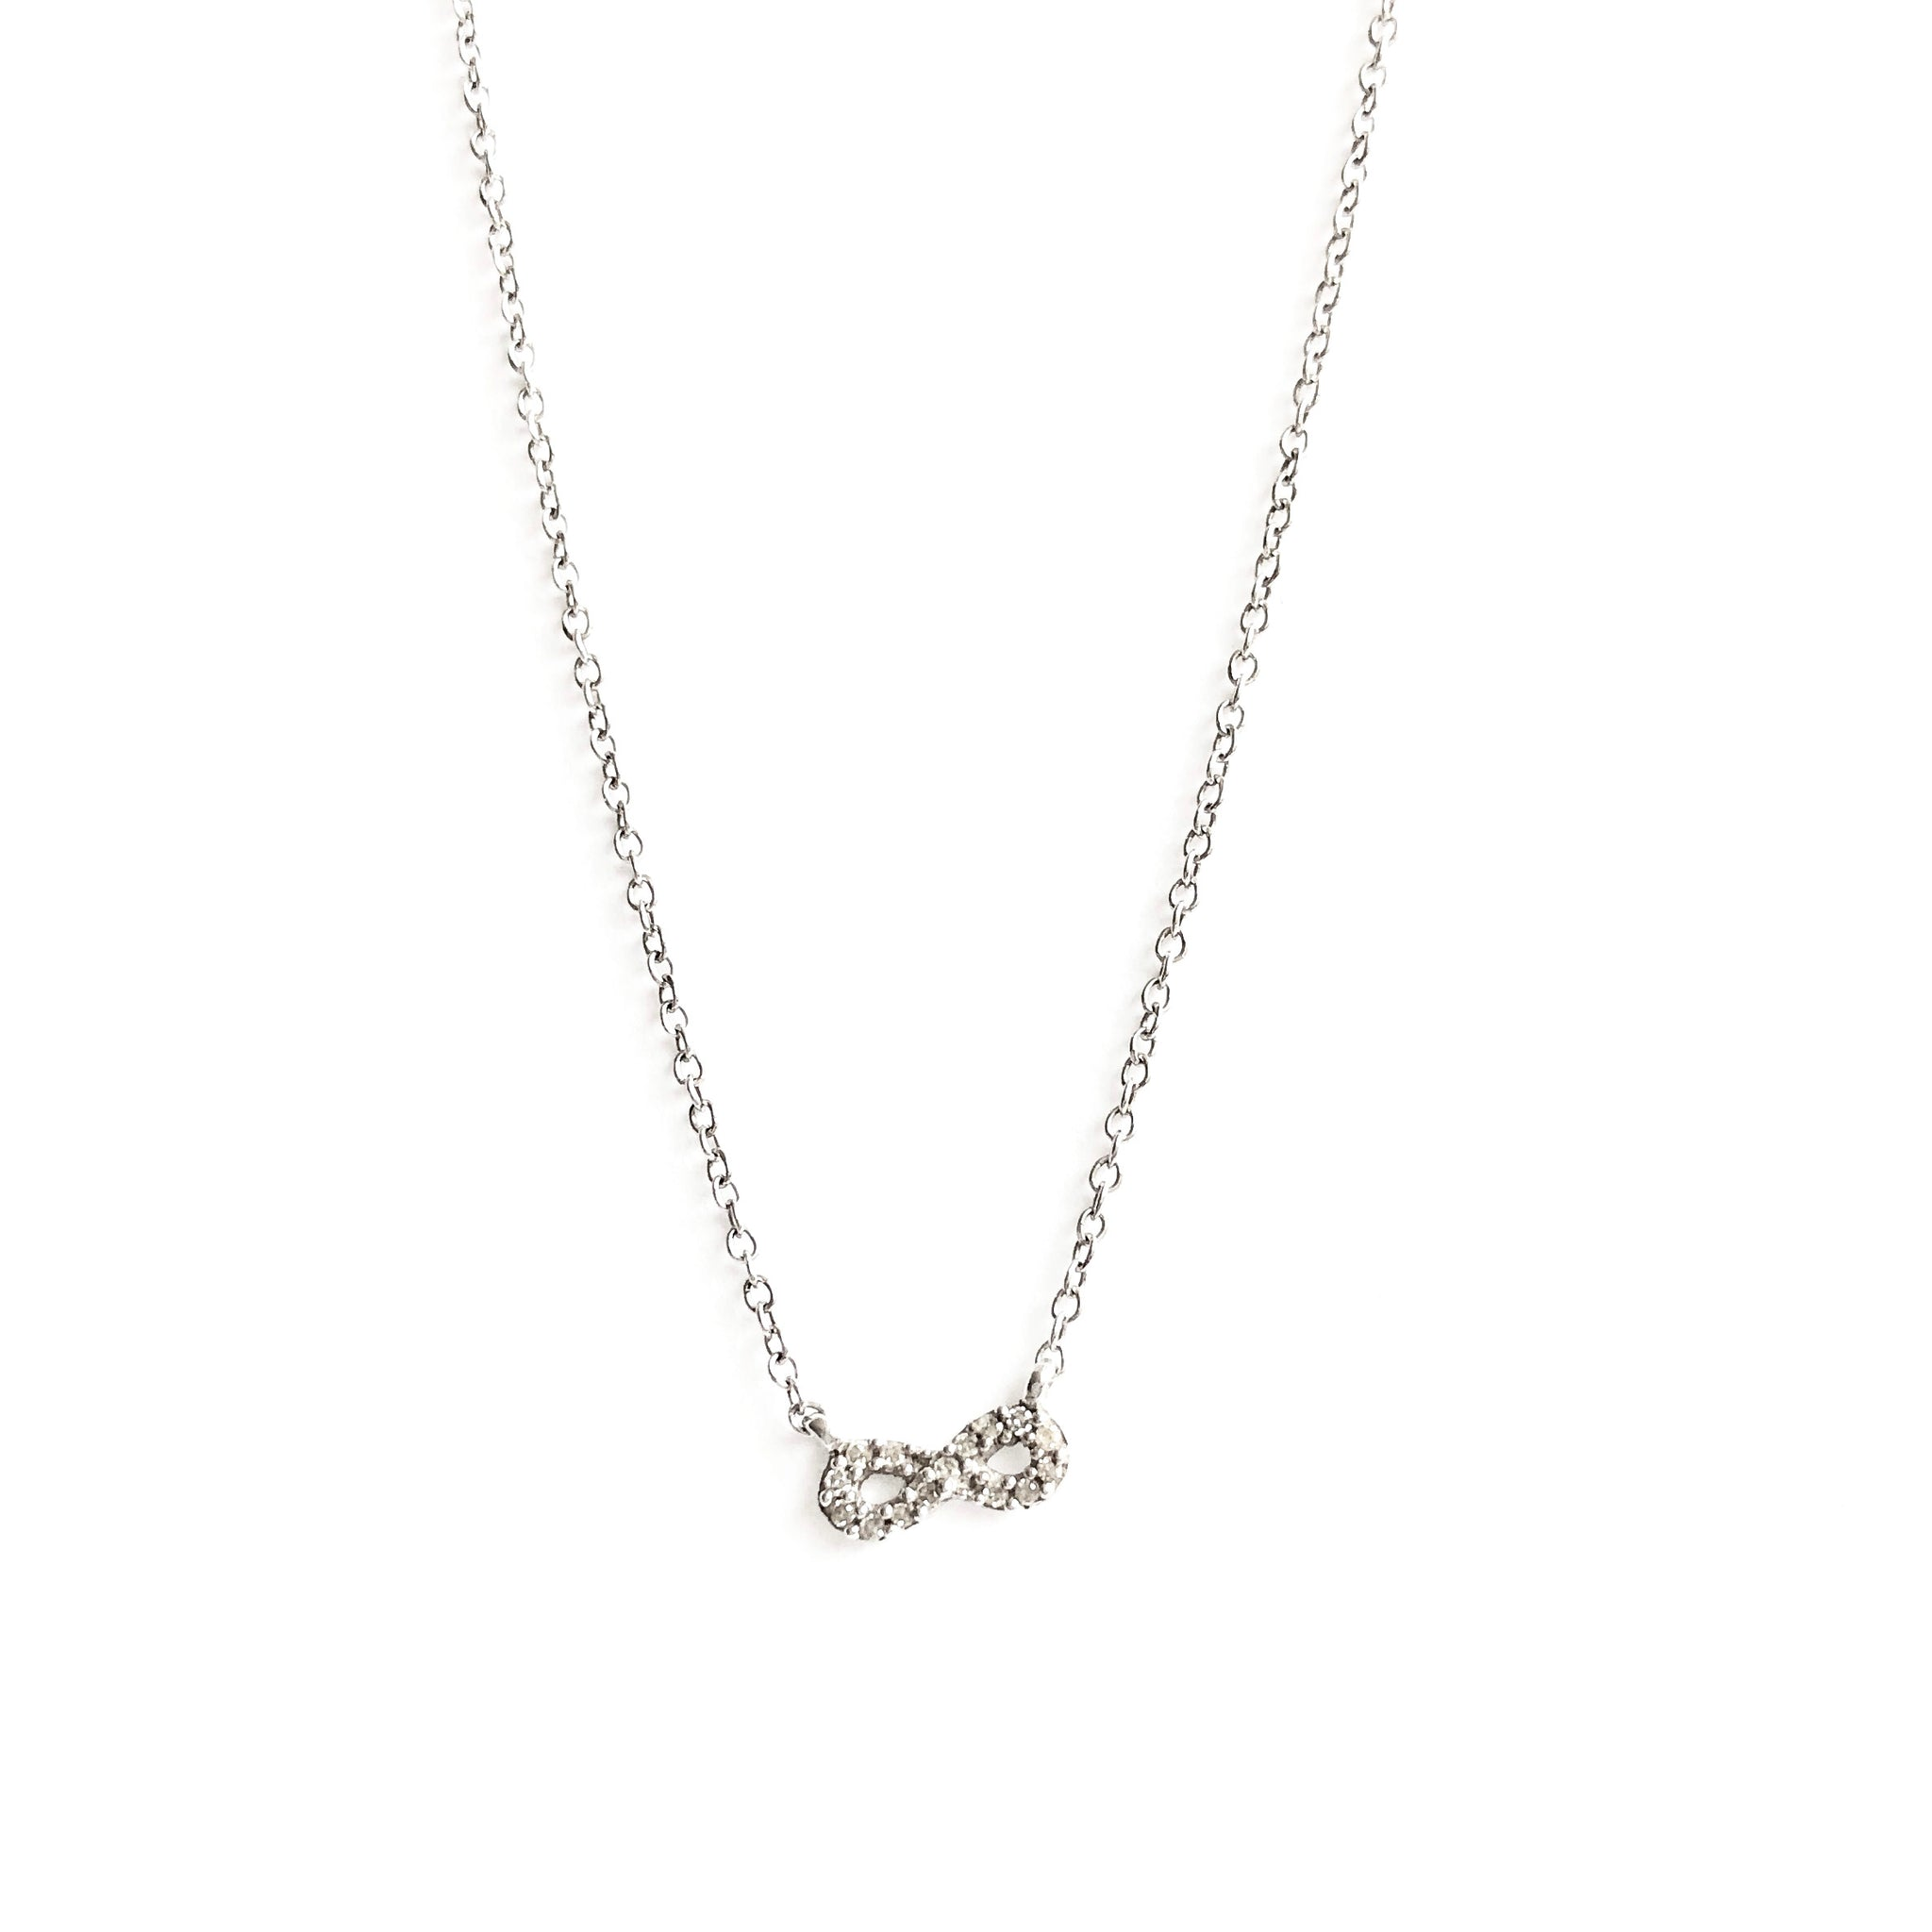 Adina Reyter Infinity Necklace